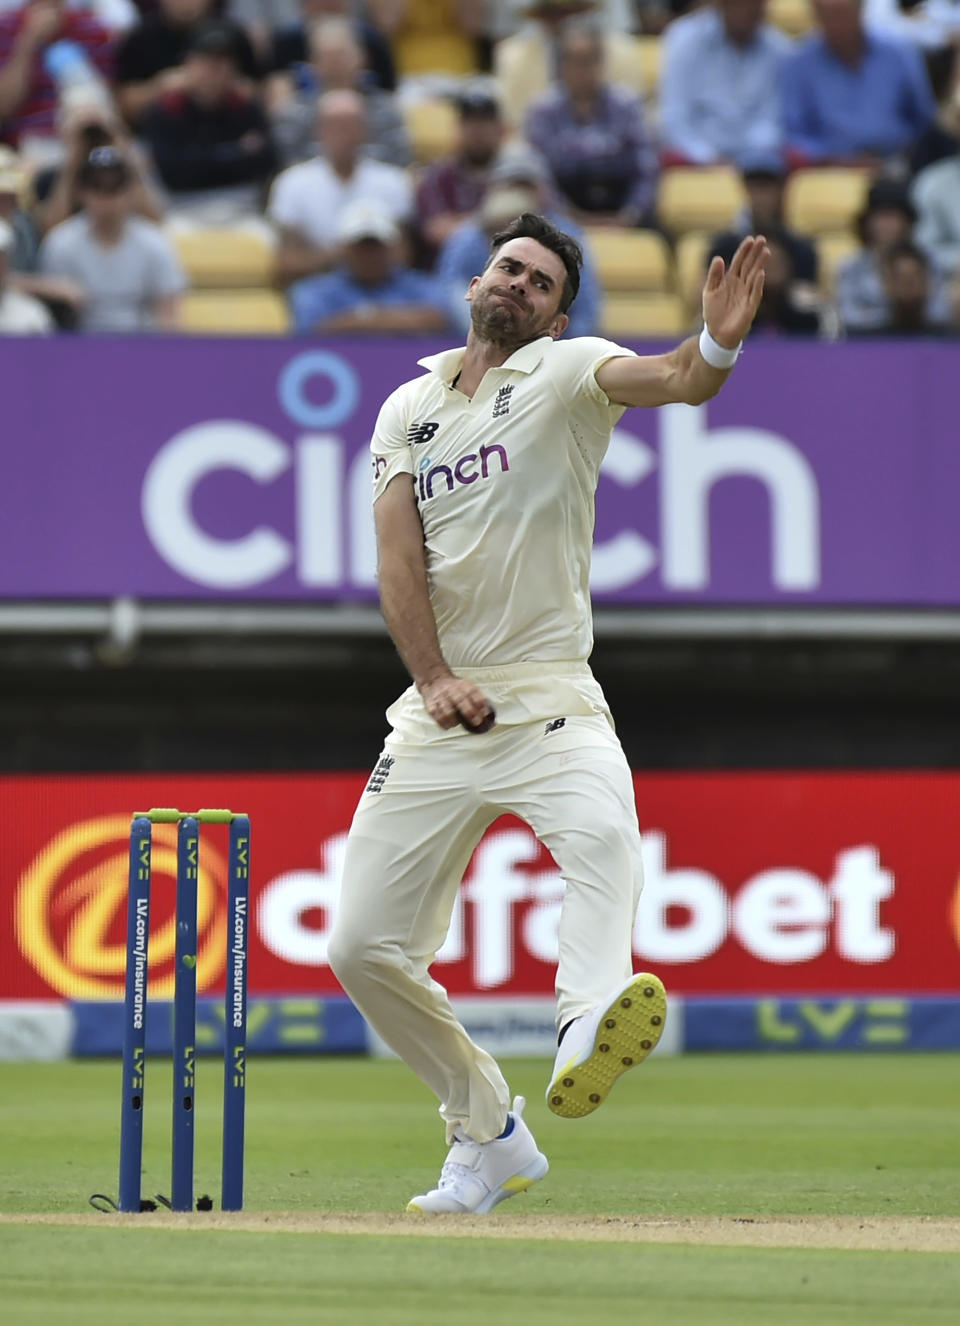 England's James Anderson bowls a delivery during the second day of the second cricket test match between England and New Zealand at Edgbaston in Birmingham, England, Friday, June 11, 2021. (AP Photo/Rui Vieira)